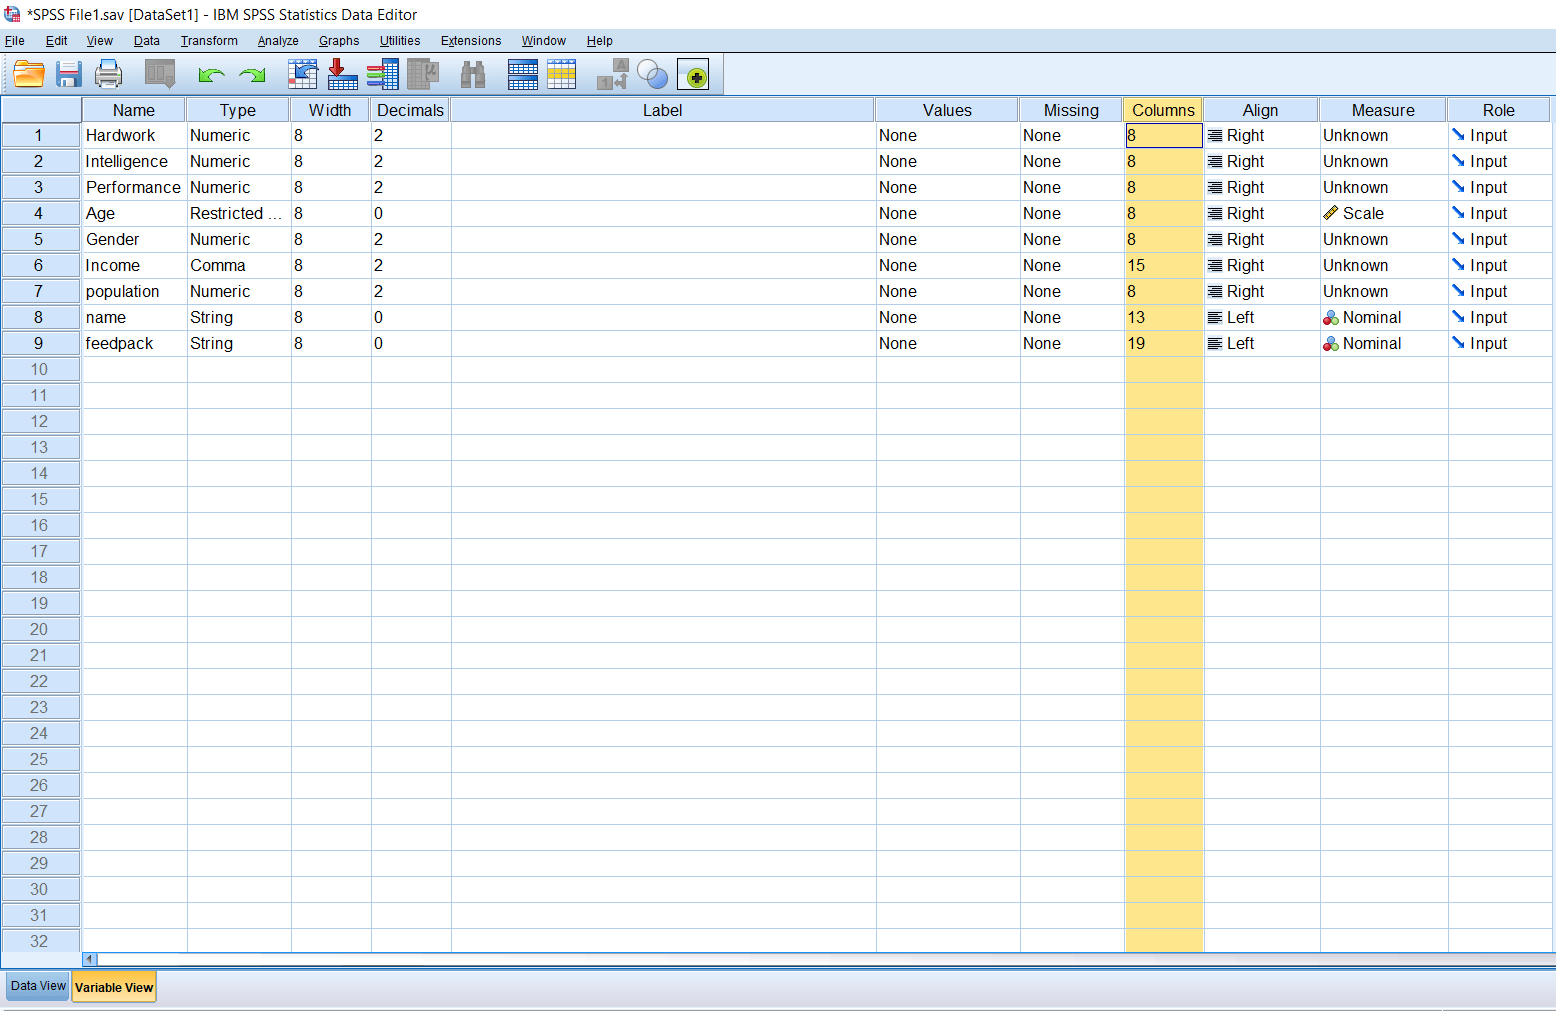 Columns and Alignment in SPSS